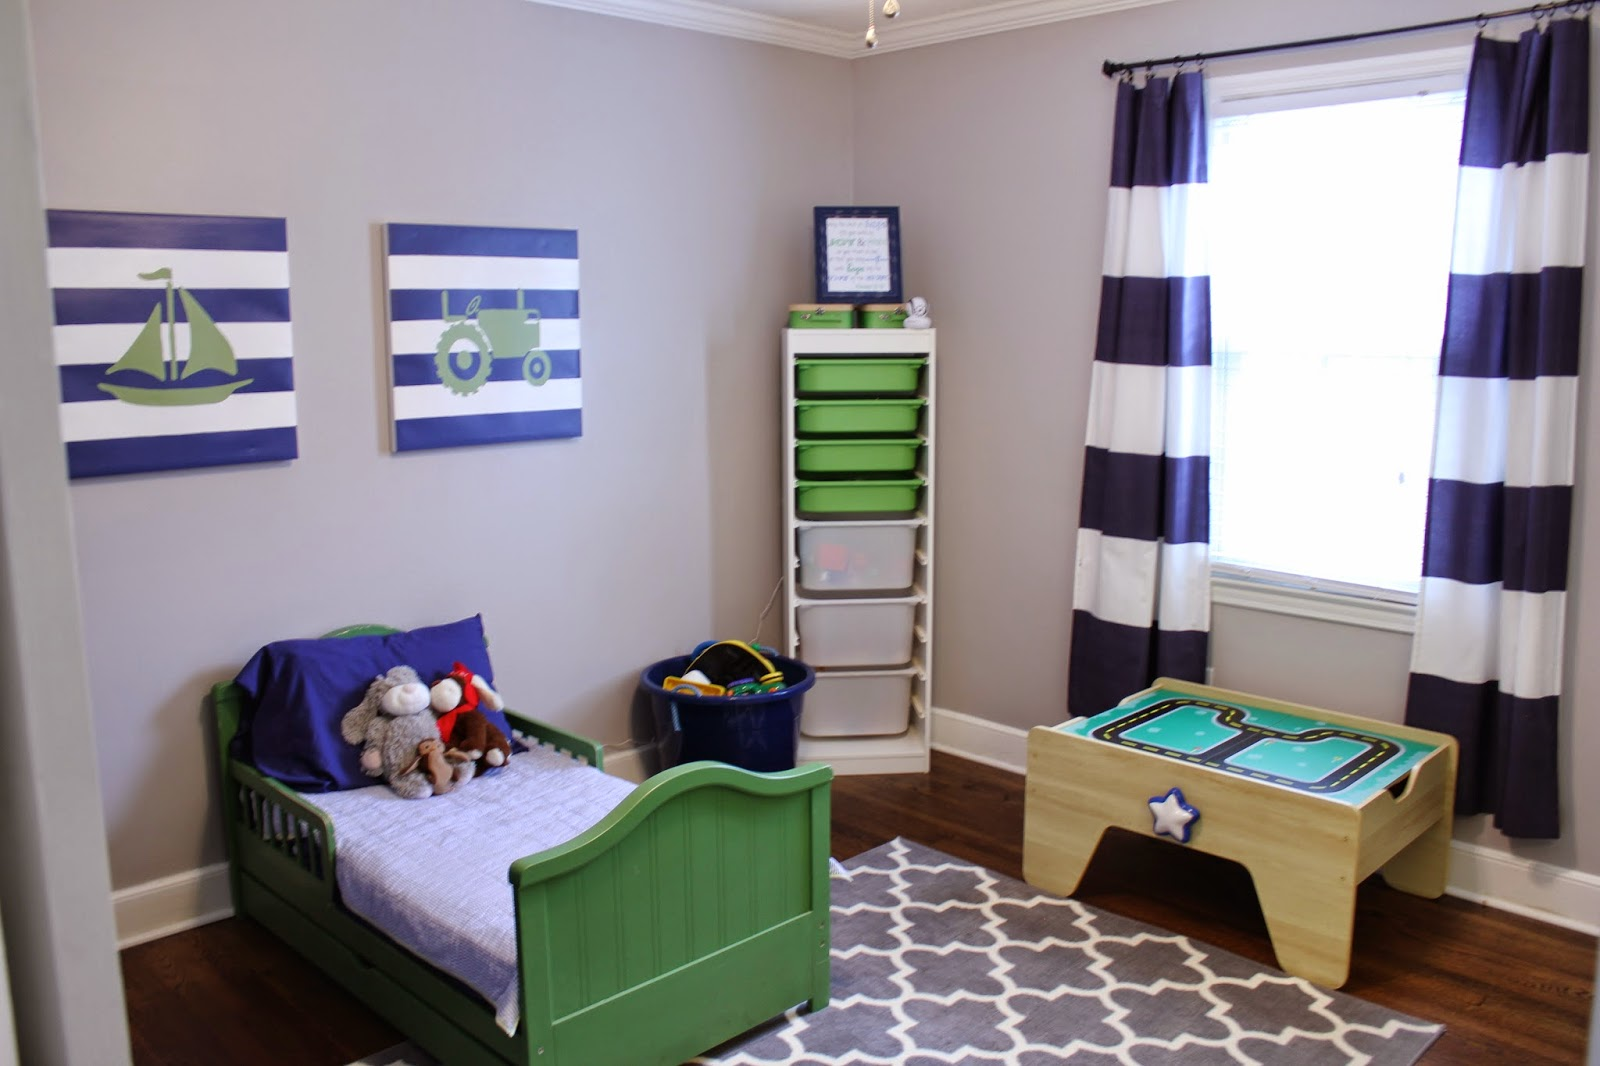 Toddler Boys Rooms Designs Toddler Room Ideas For Boy Finding The Perfect Room